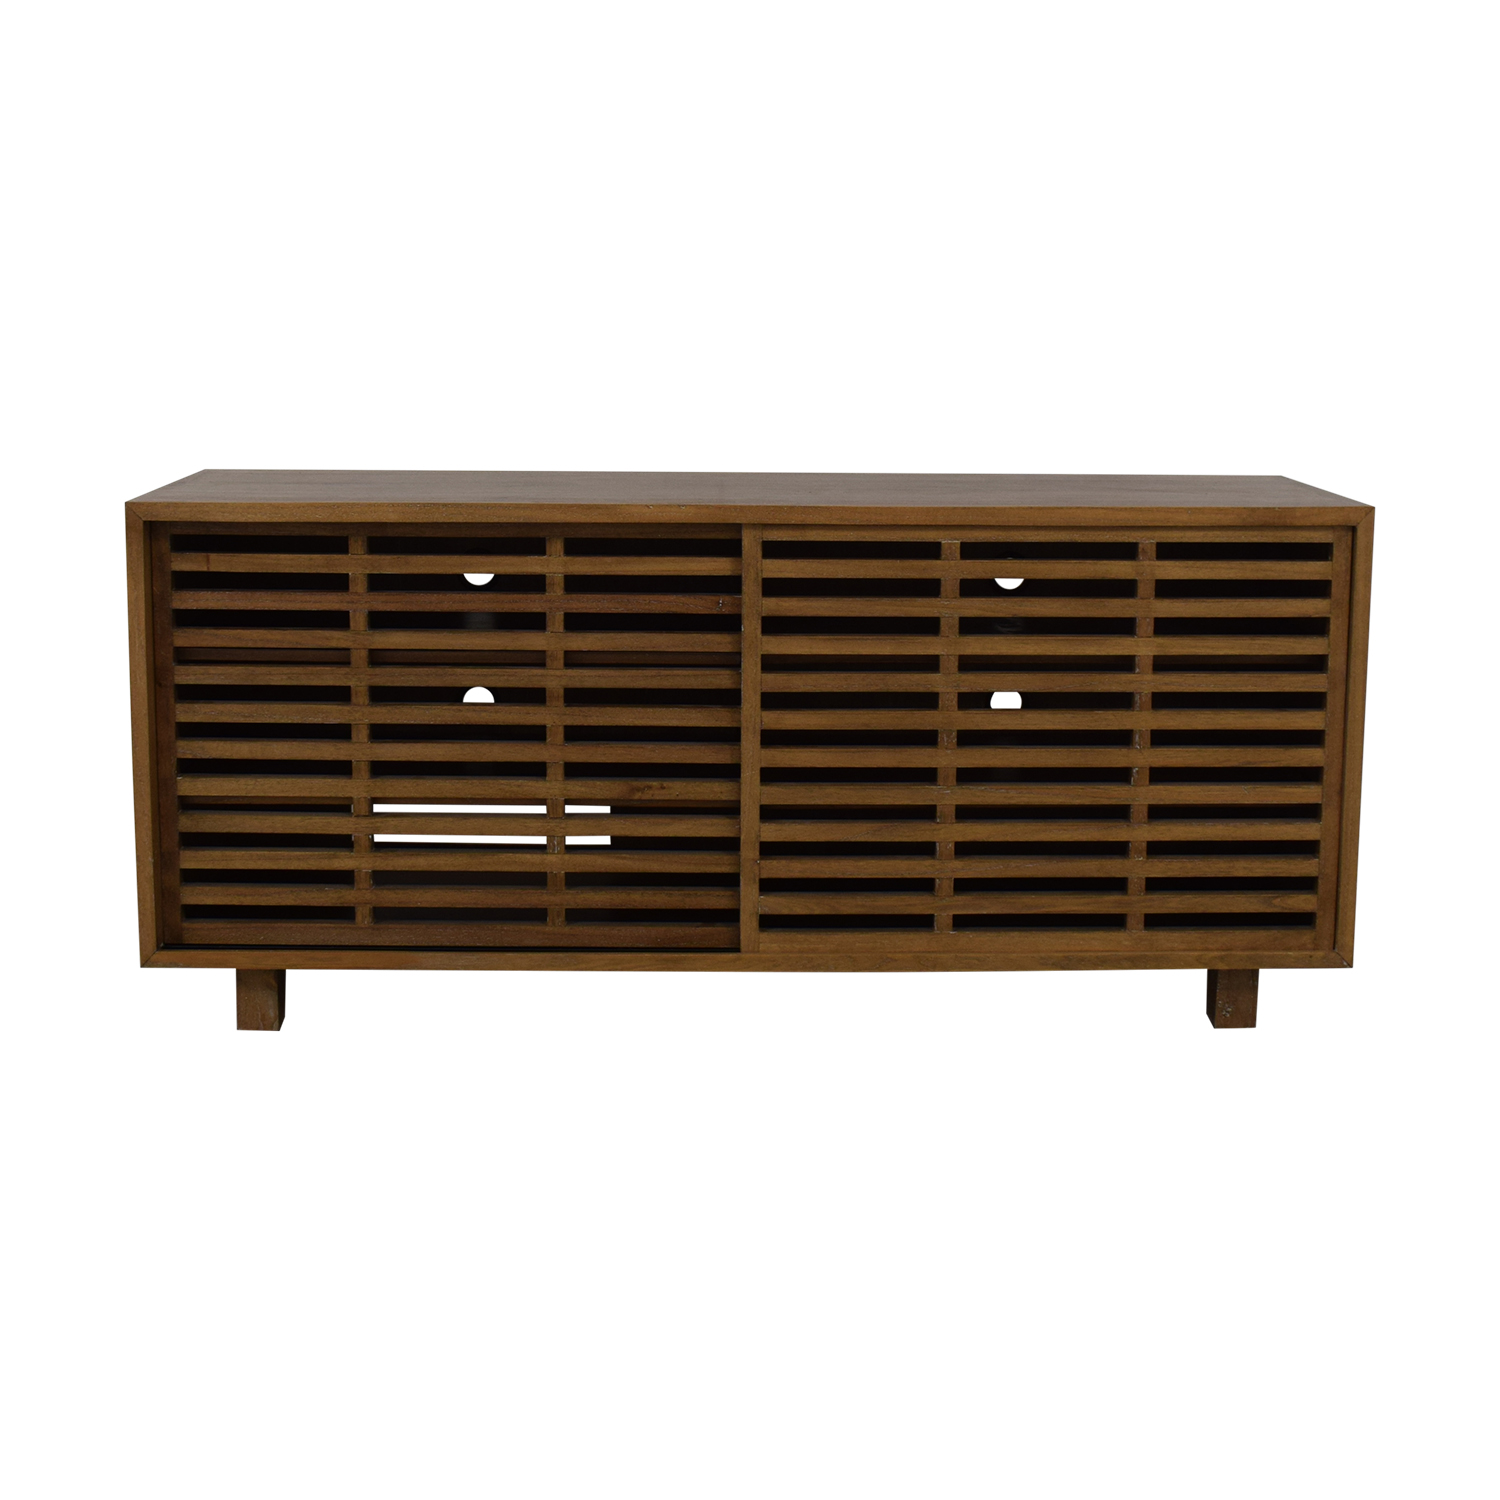 OLY Studio Dylan Contemporary Media Unit / Media Units